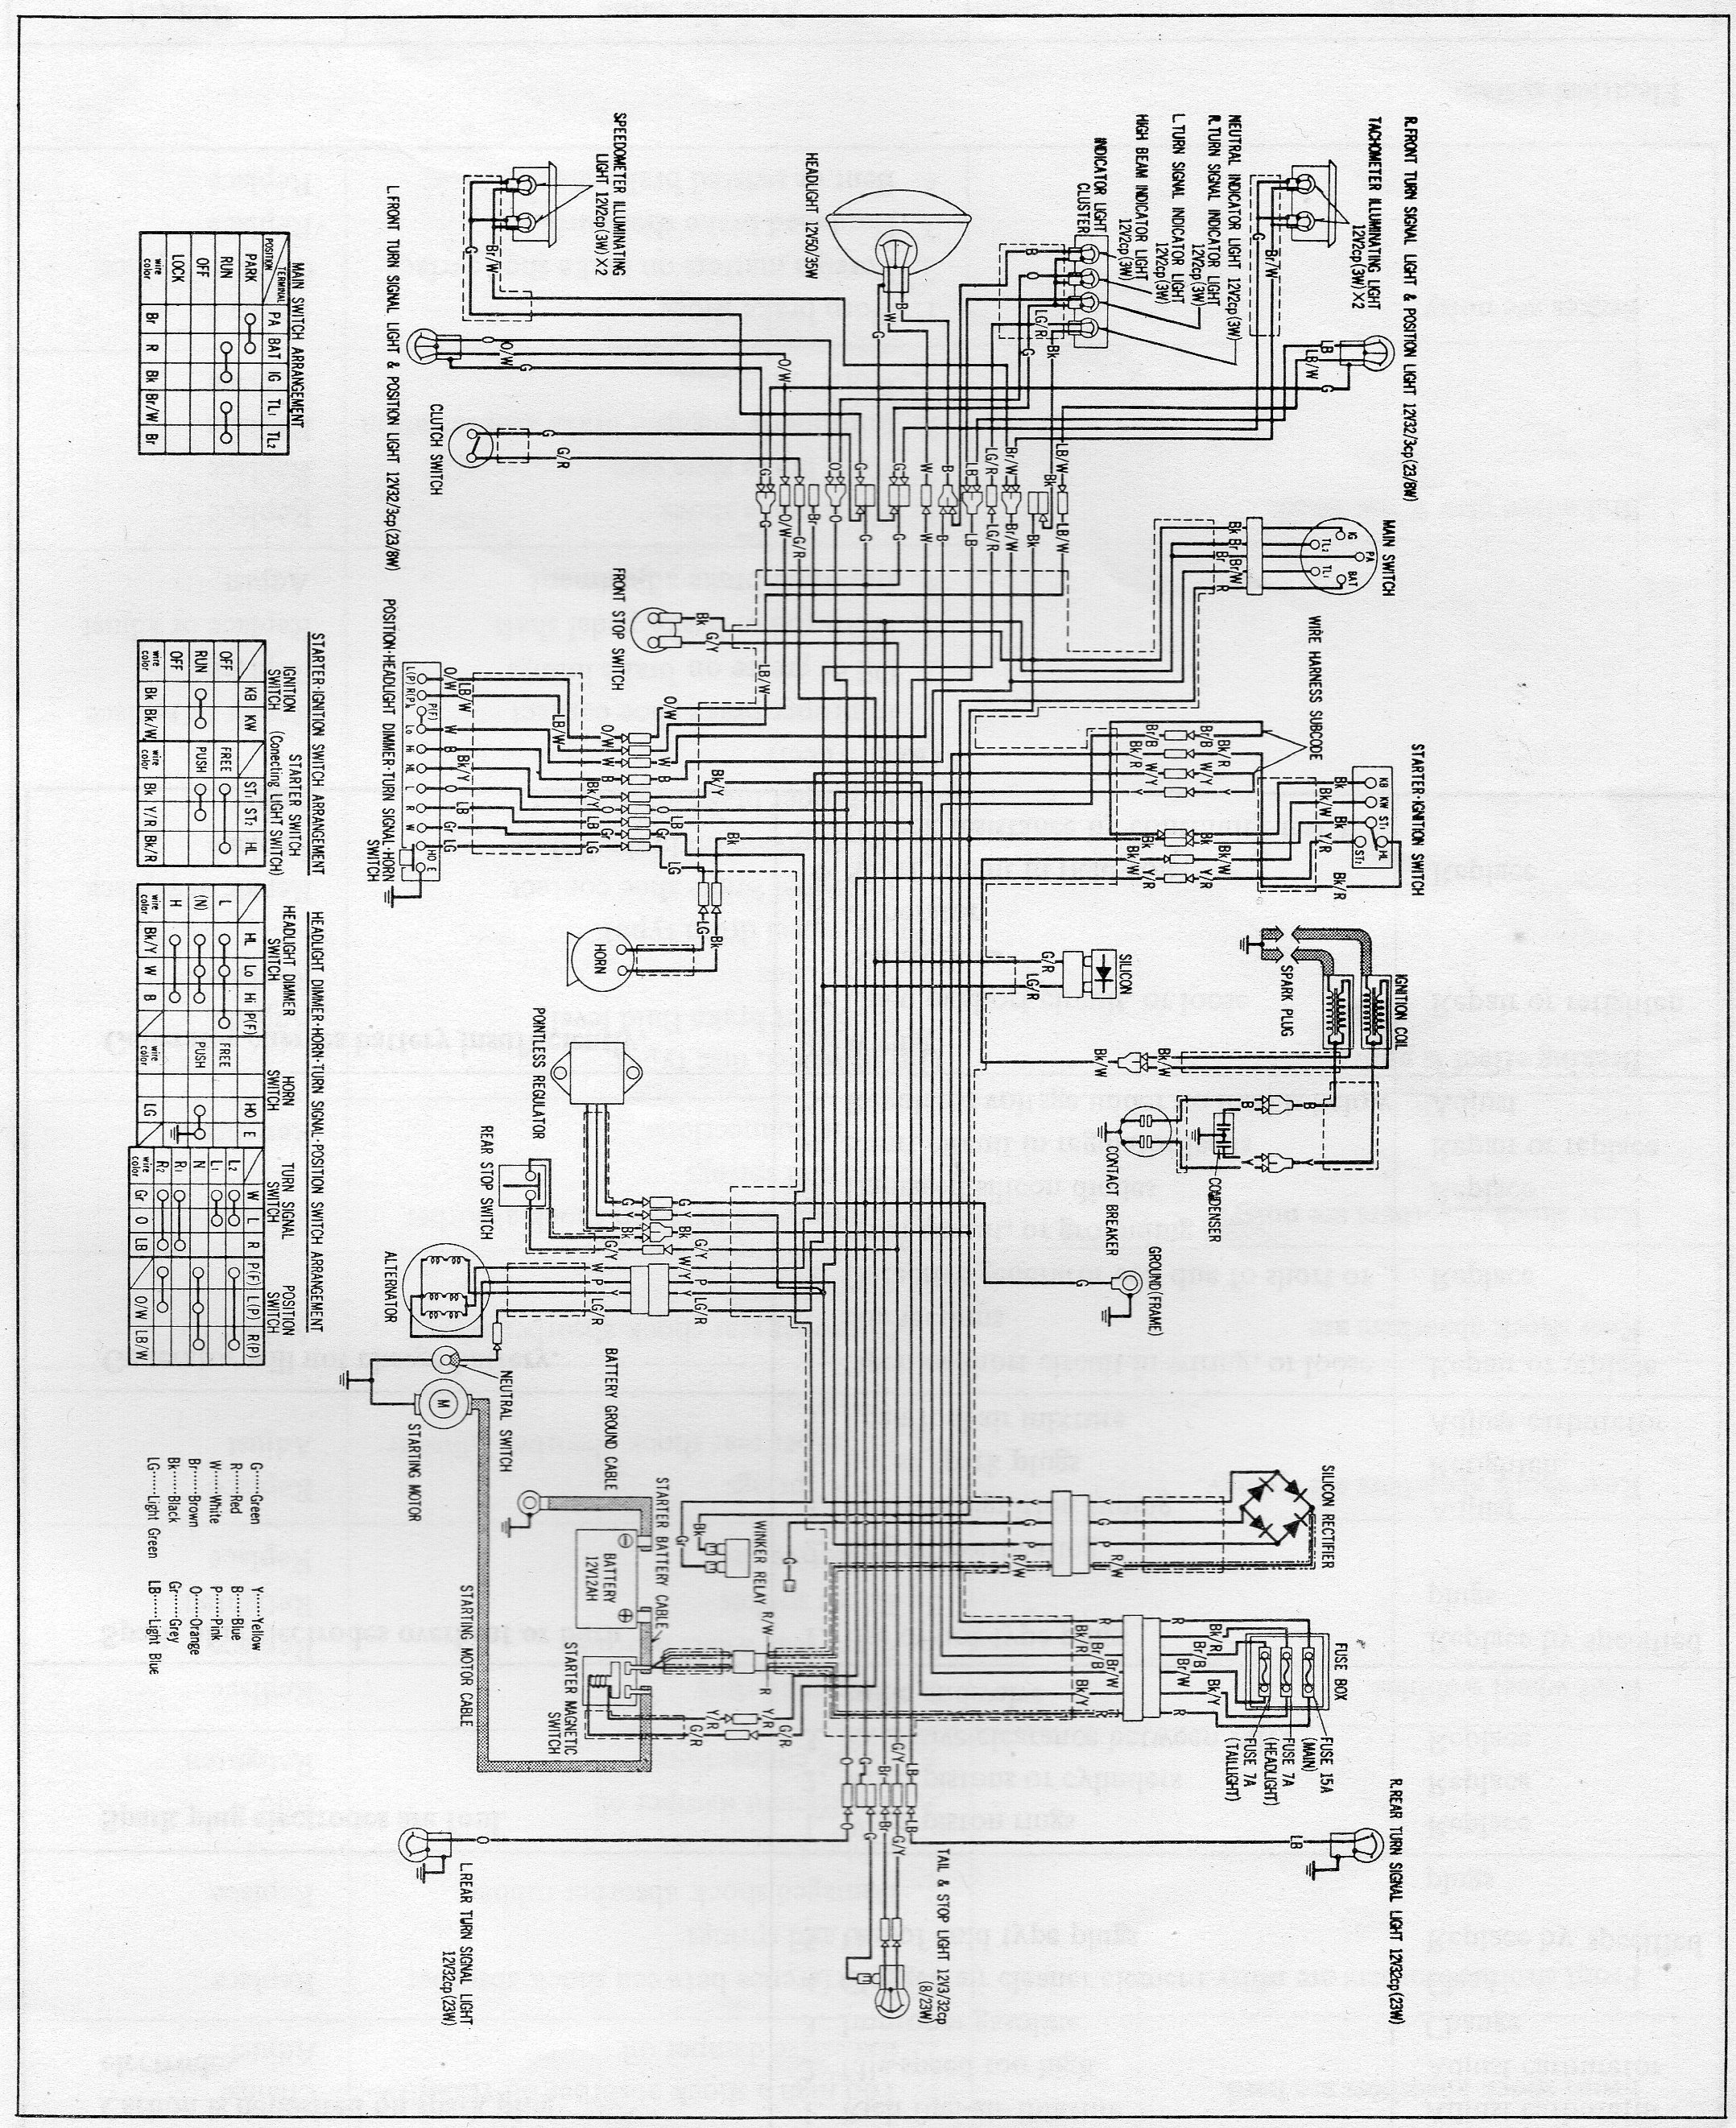 Diagram J1 Wiring Diagram Full Version Hd Quality Wiring Diagram Diagramberesx Hotelbarancio It